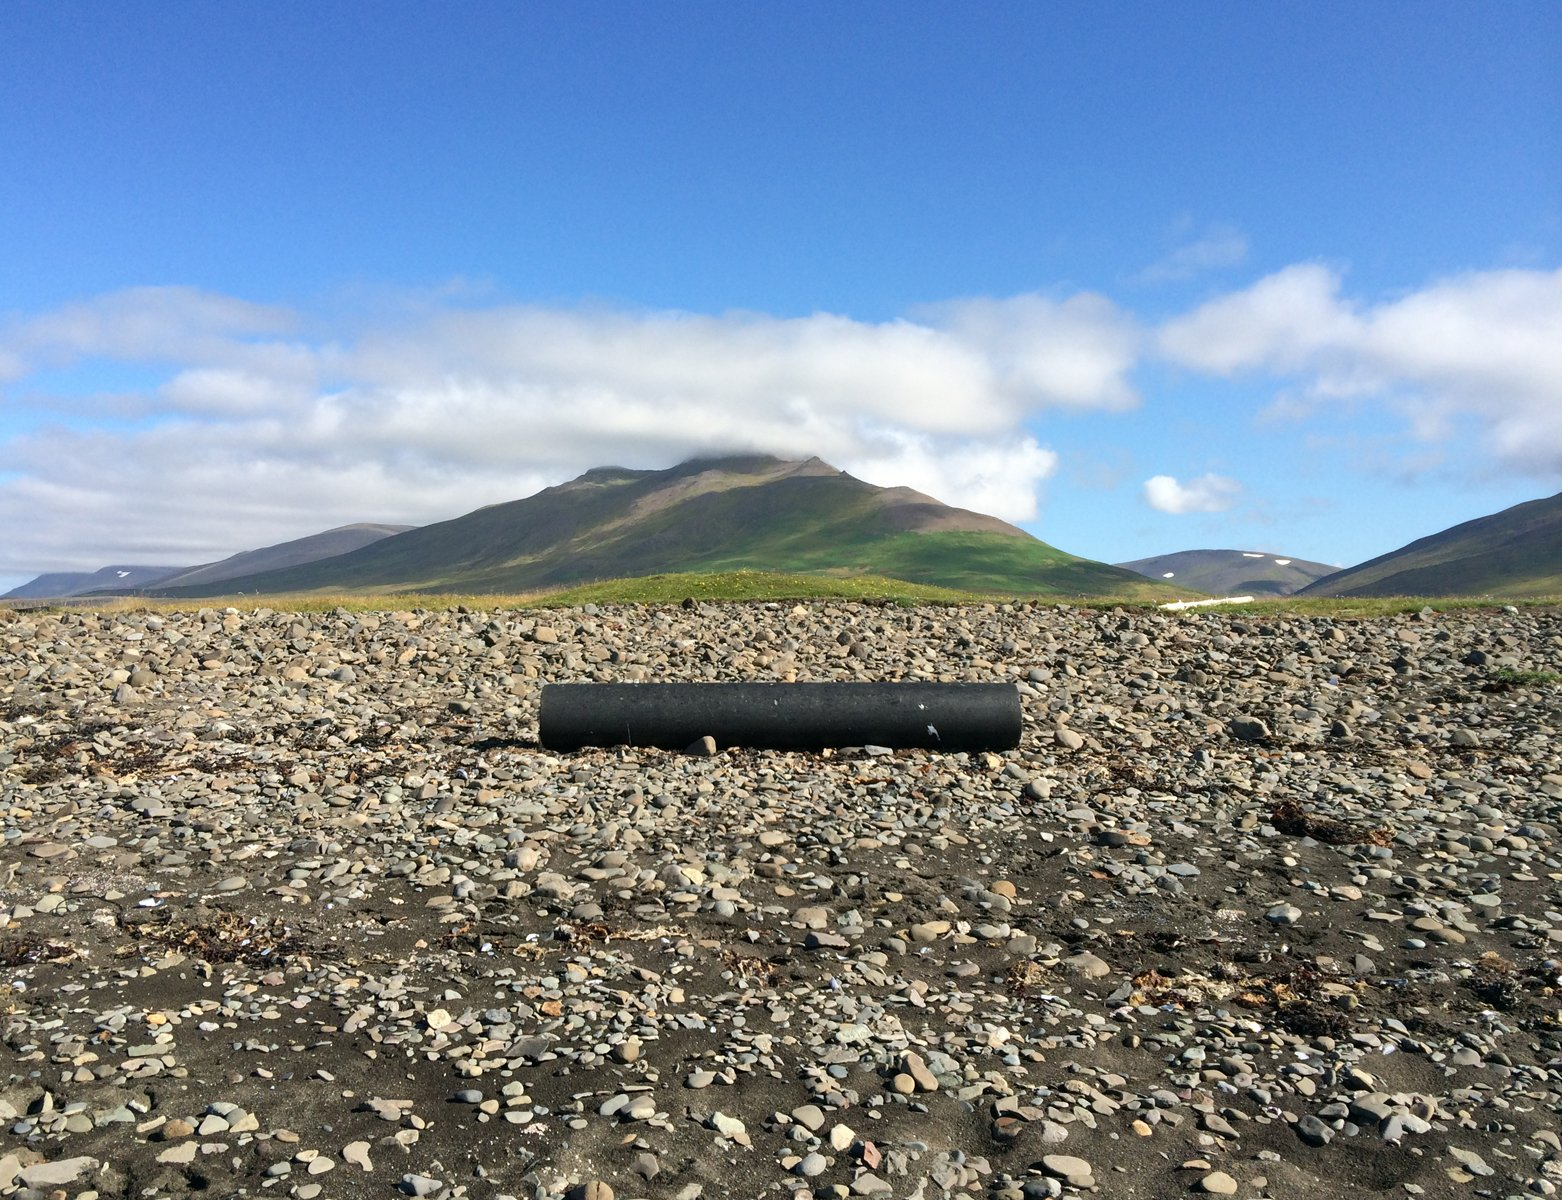 A black plastic tube on a gravel beach with mountains behind, and a sunny sky.